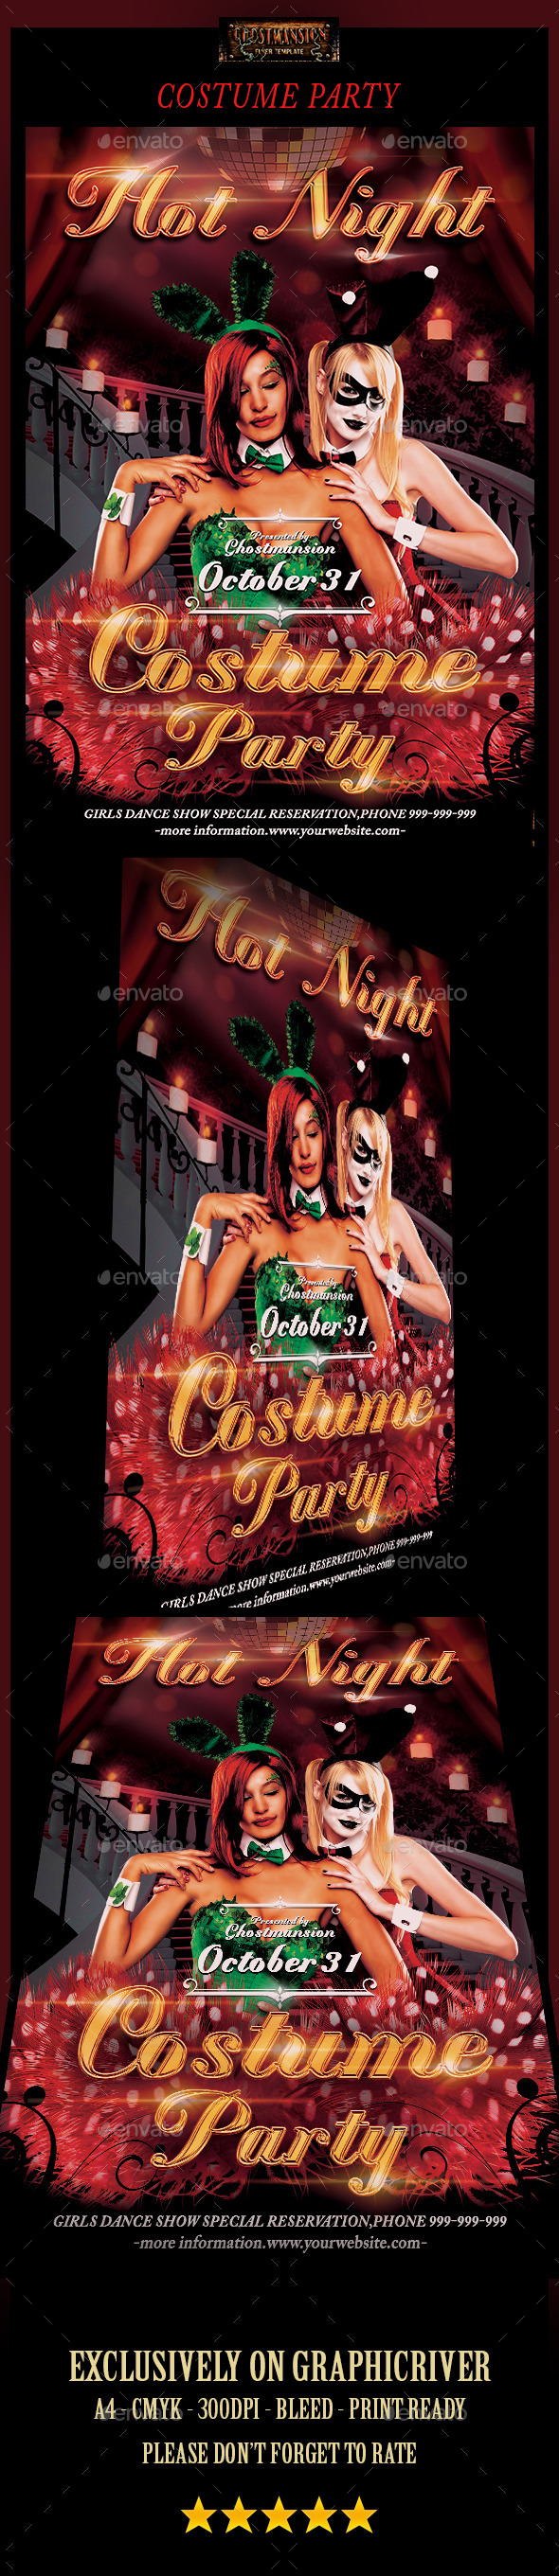 GraphicRiver Costume Party Flyer Template 9102156